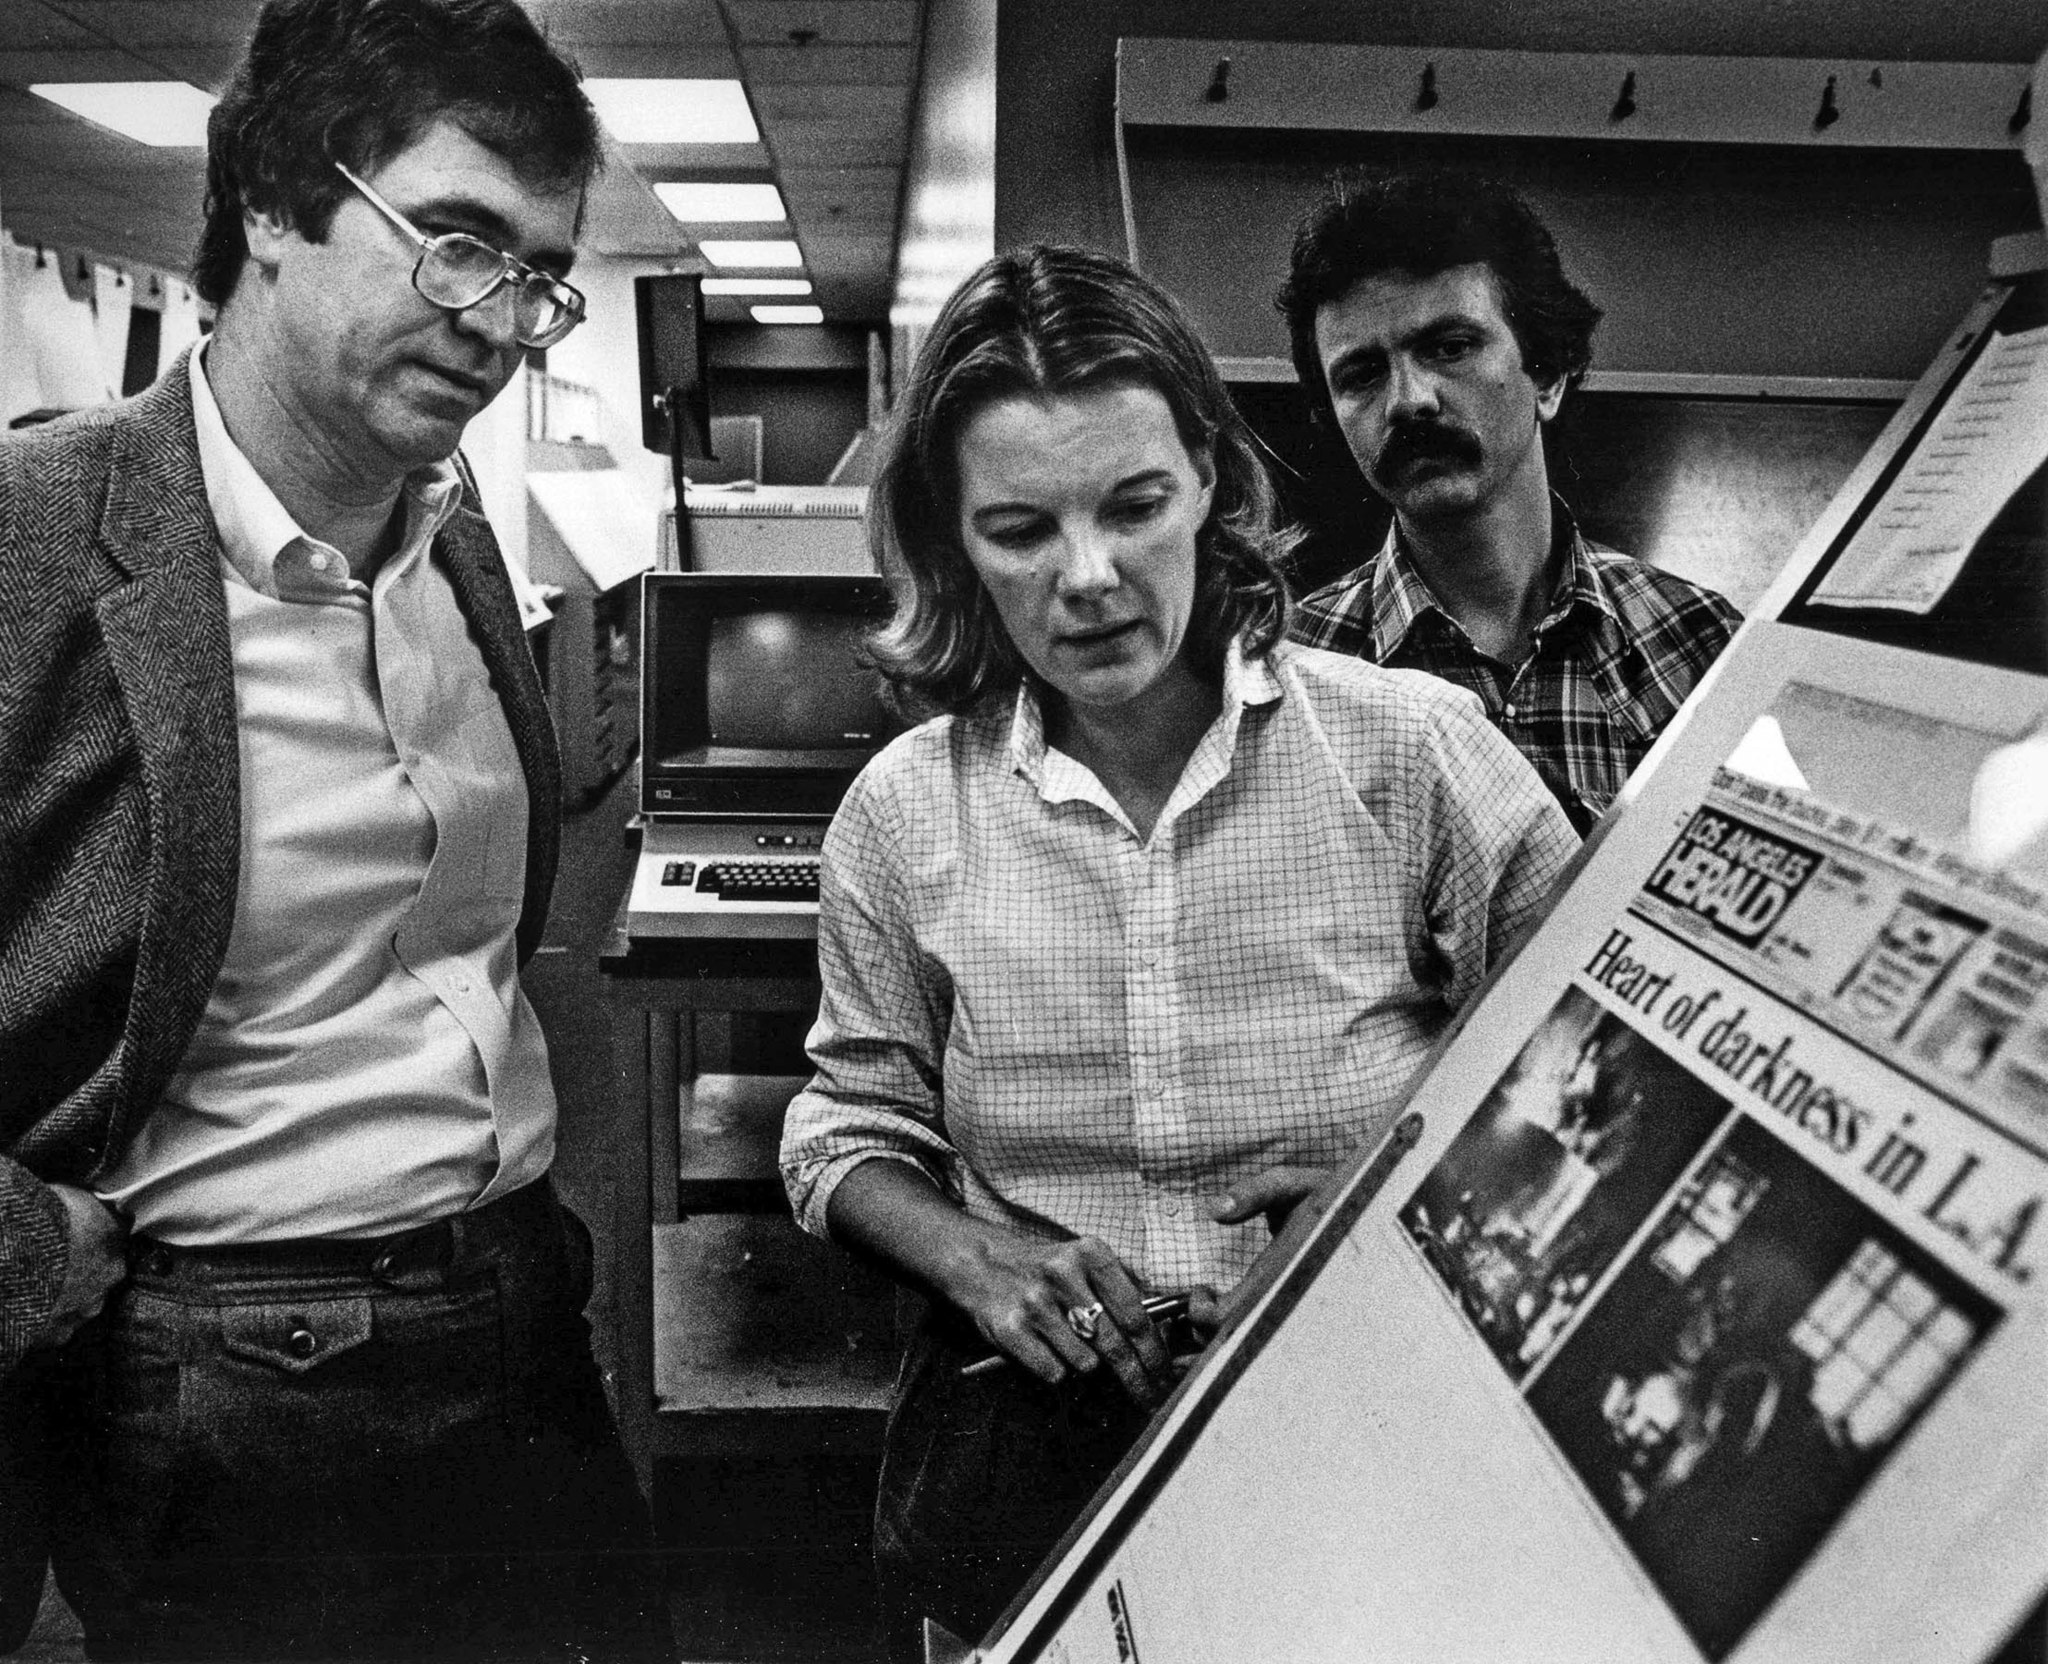 Oct. 11, 1983: Los Angeles Times publisher Tom Johnson and Los Angeles Herald Examiner editor Mary A